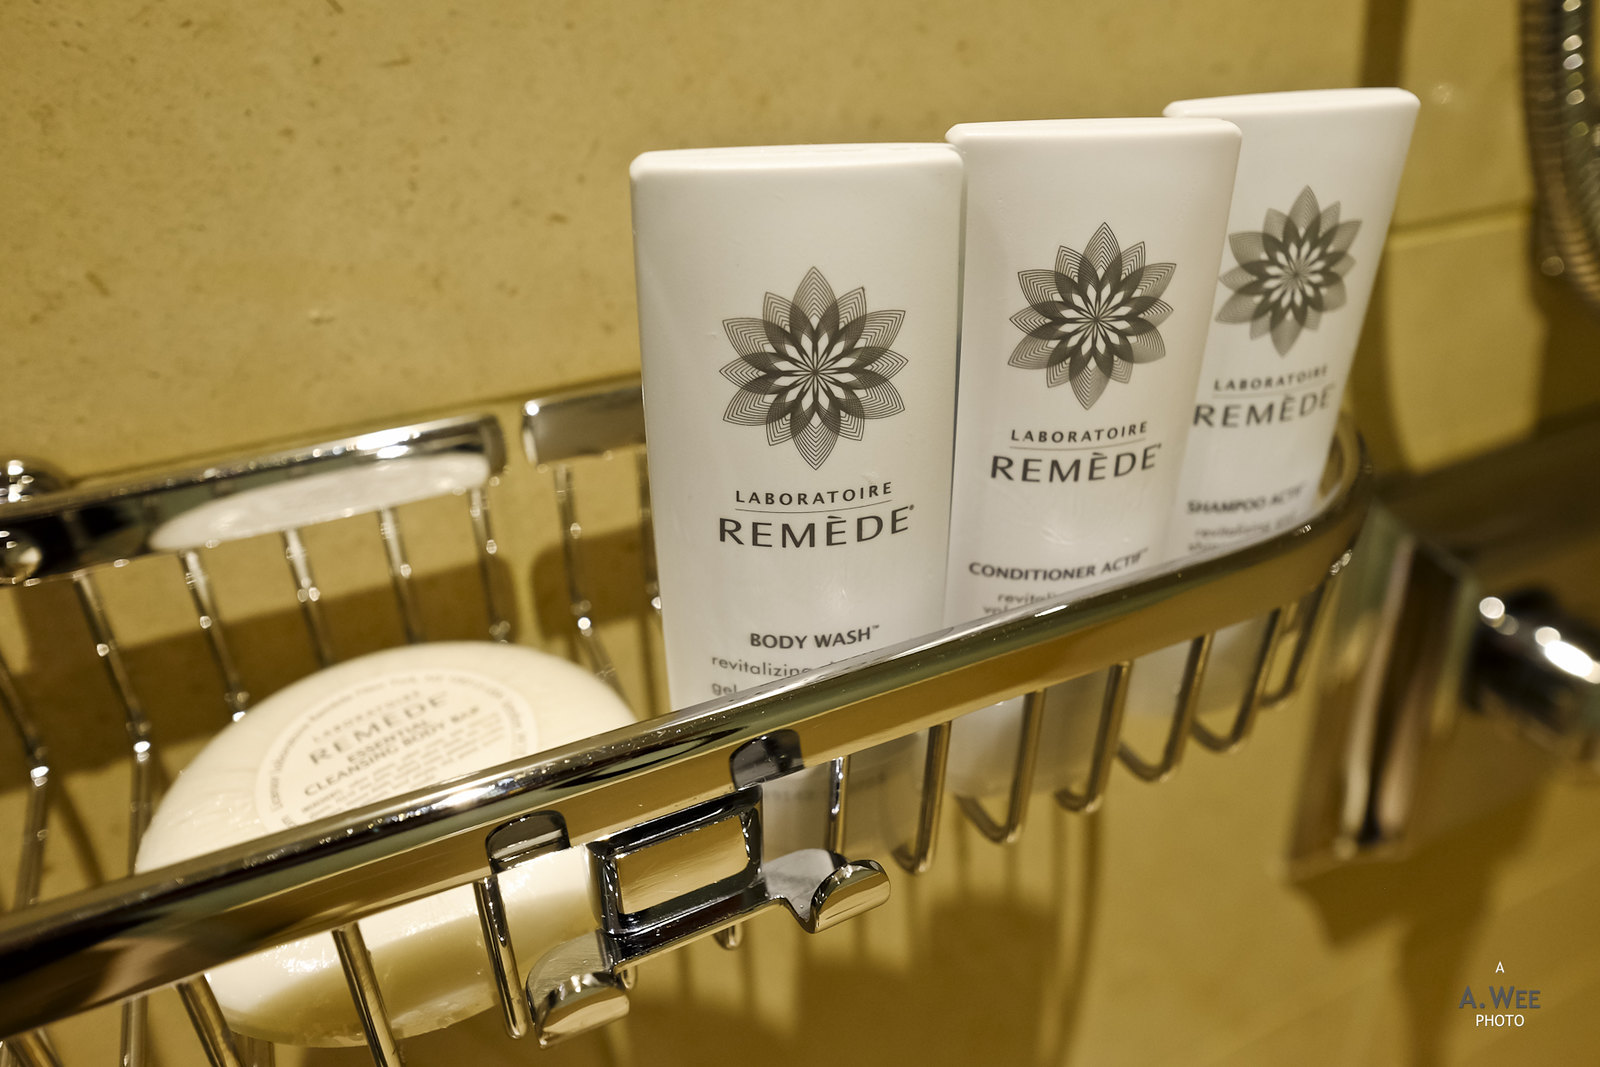 Remede bath amenities